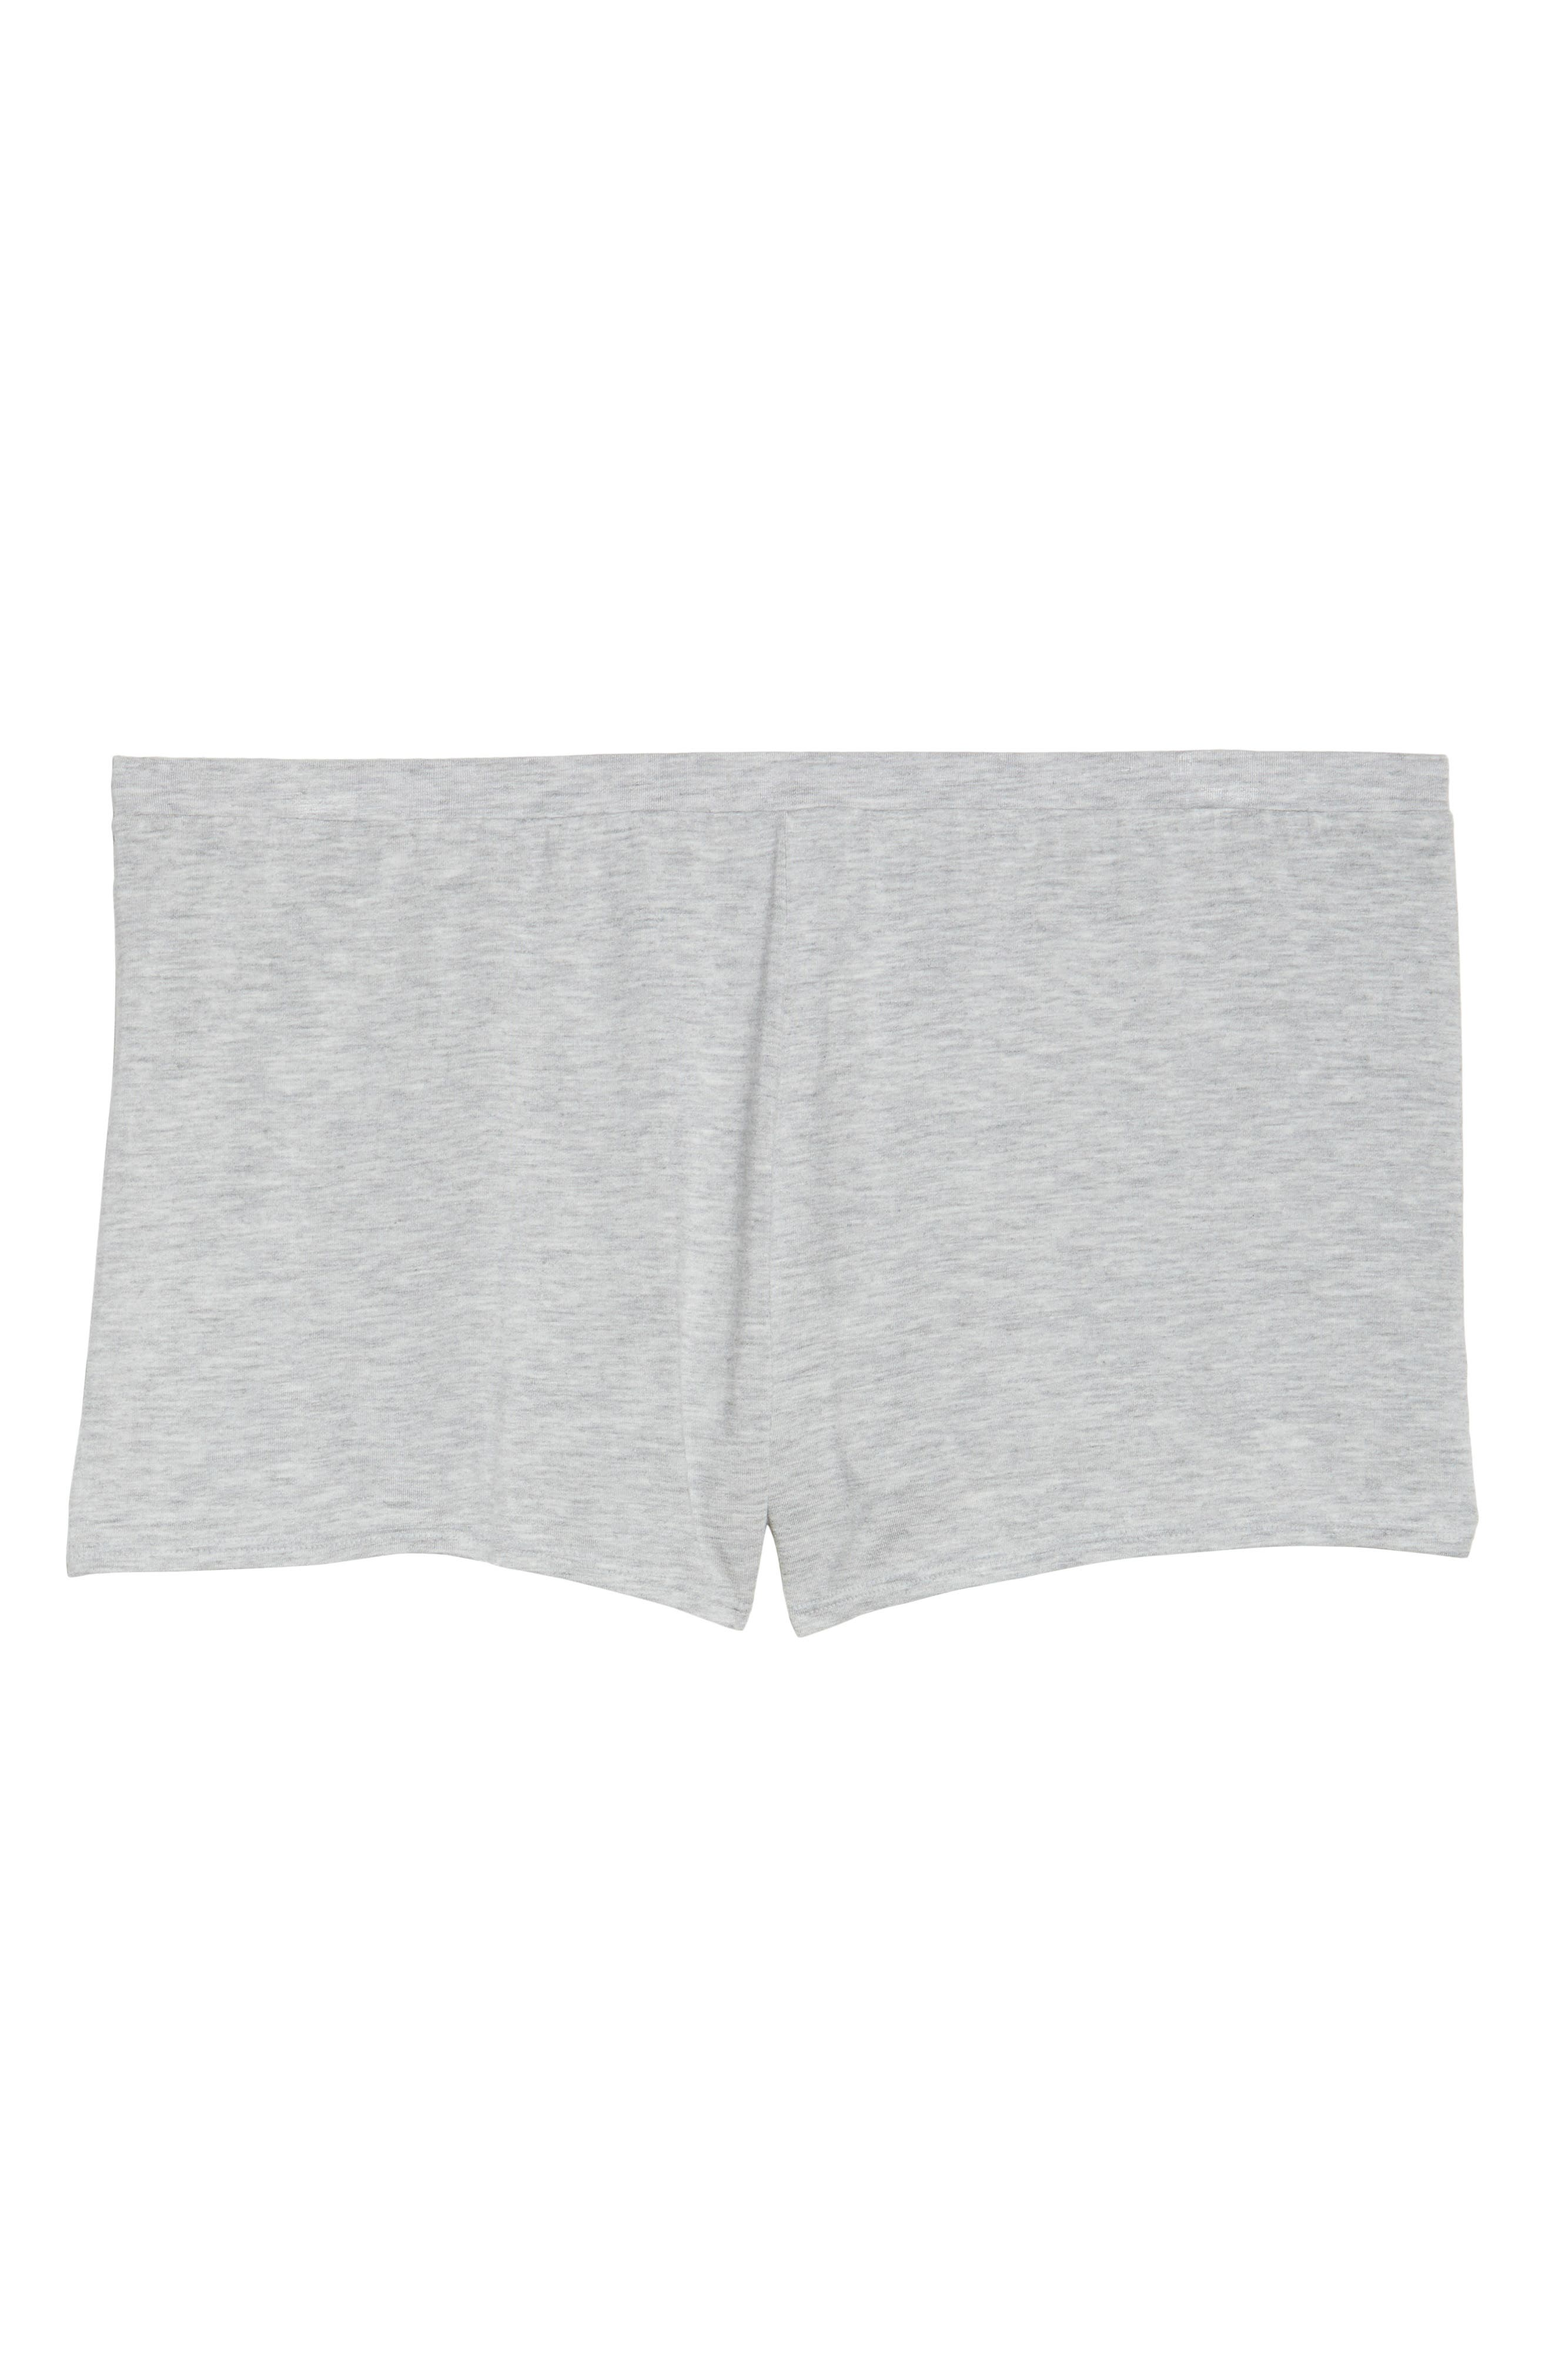 Undressed Pajama Shorts,                             Alternate thumbnail 4, color,                             Silver